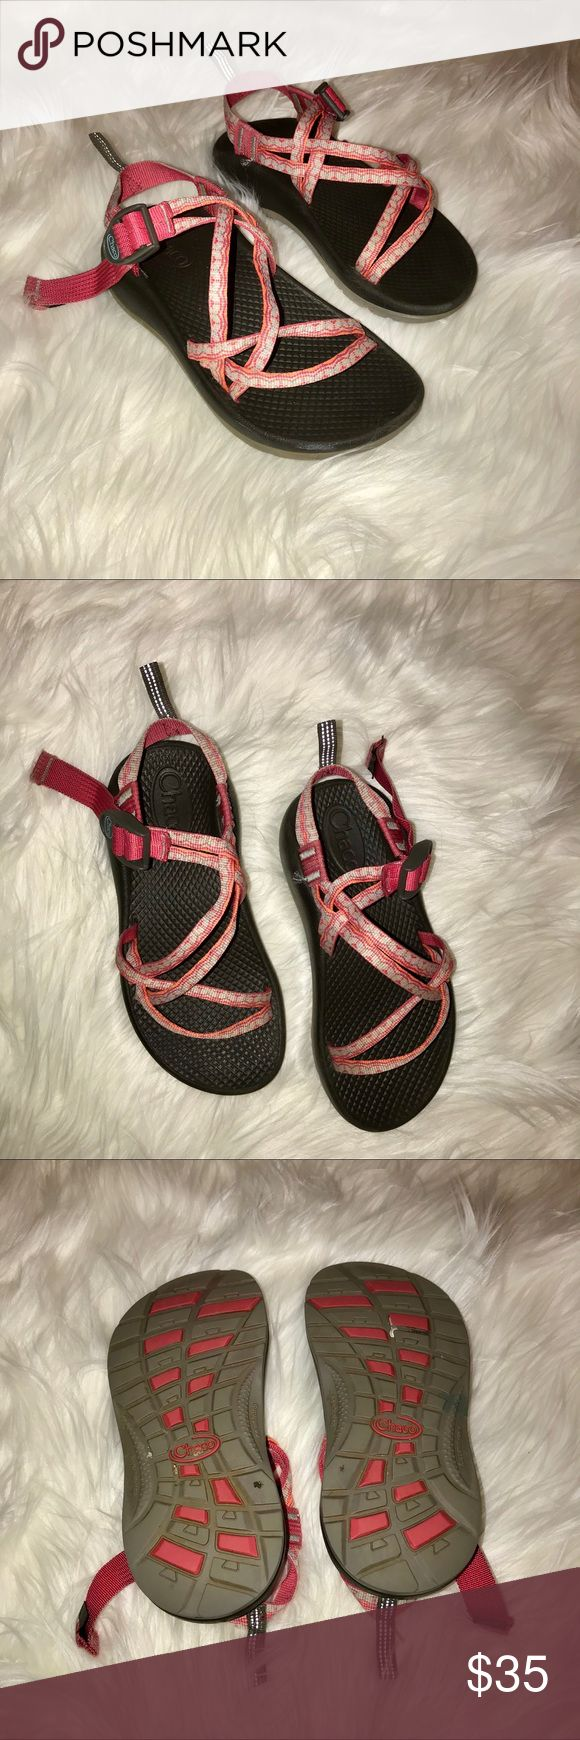 Big Kids Chacos Girls' Chacos, great condition! Chaco Shoes Sandals & Flip Flops